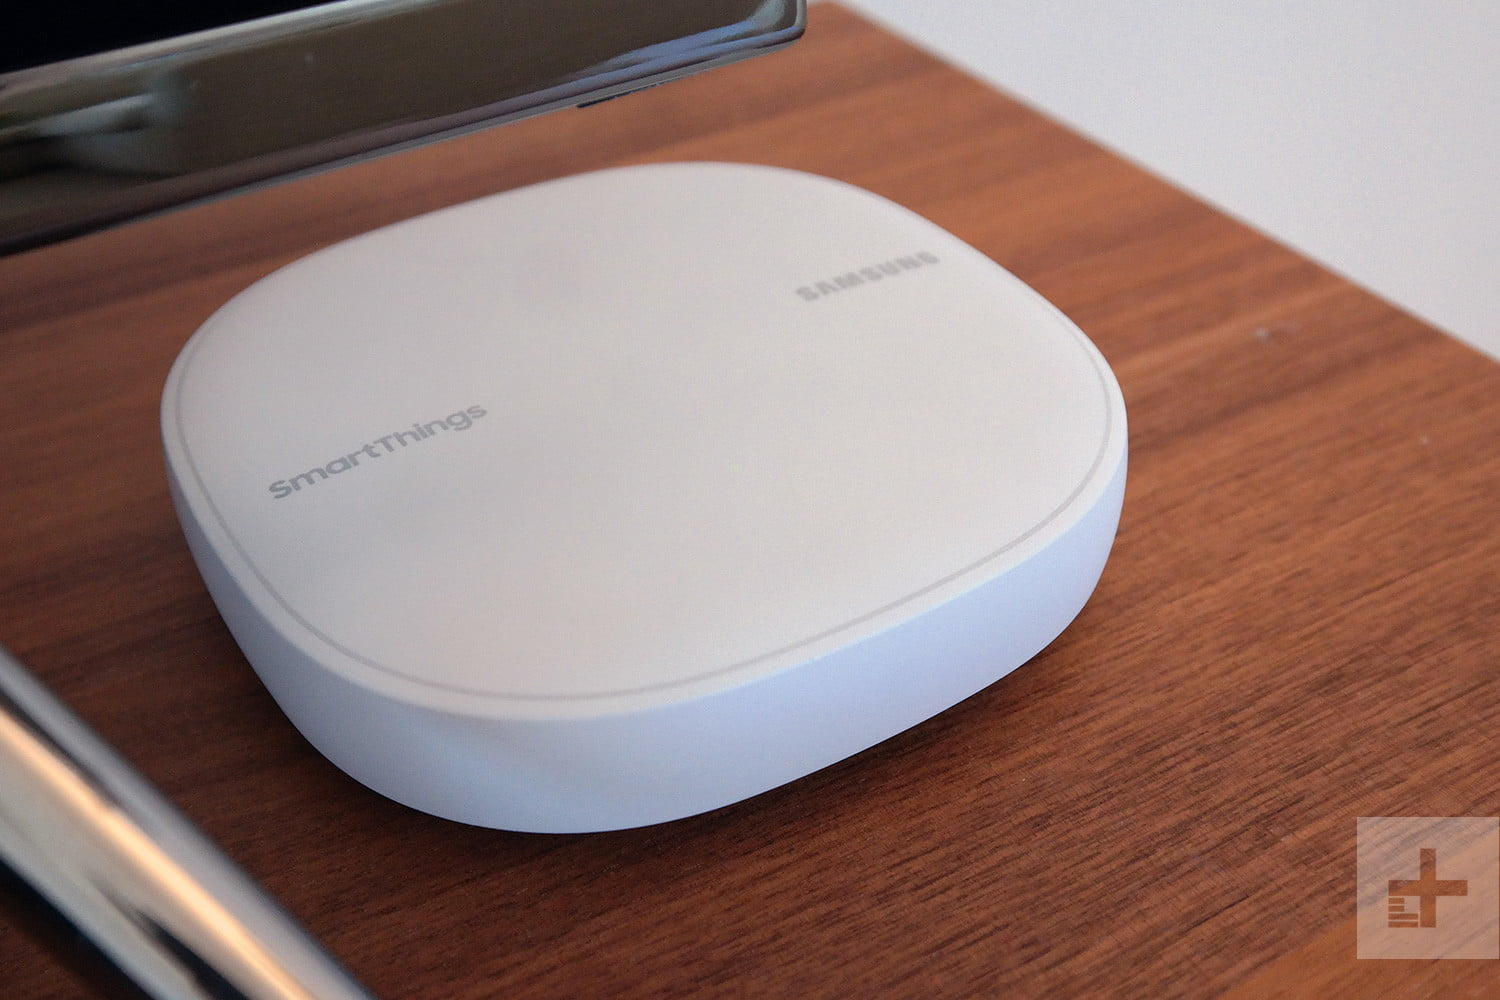 Samsung Smartthings Wi Fi Review Digital Trends Diagram As Well Ether Router Work On Comcast Wiring W Angle